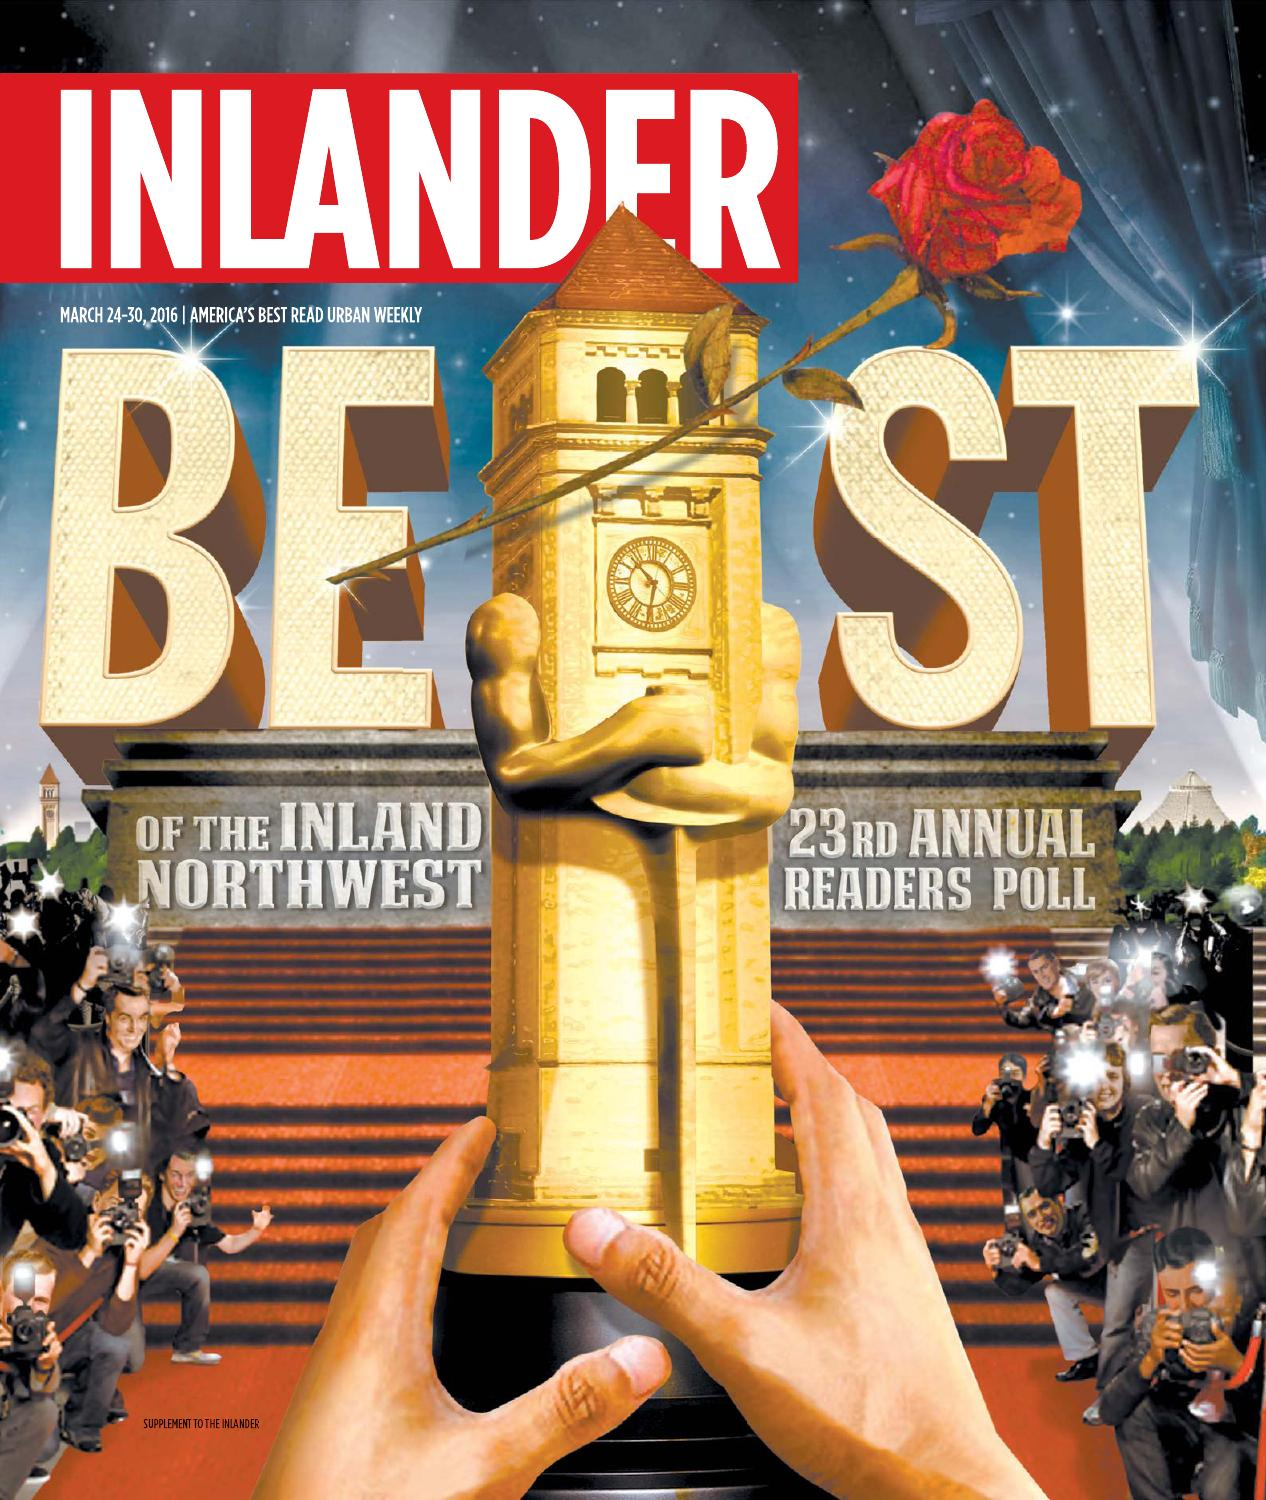 Inlander 03/24/2016 by The Inlander - issuu